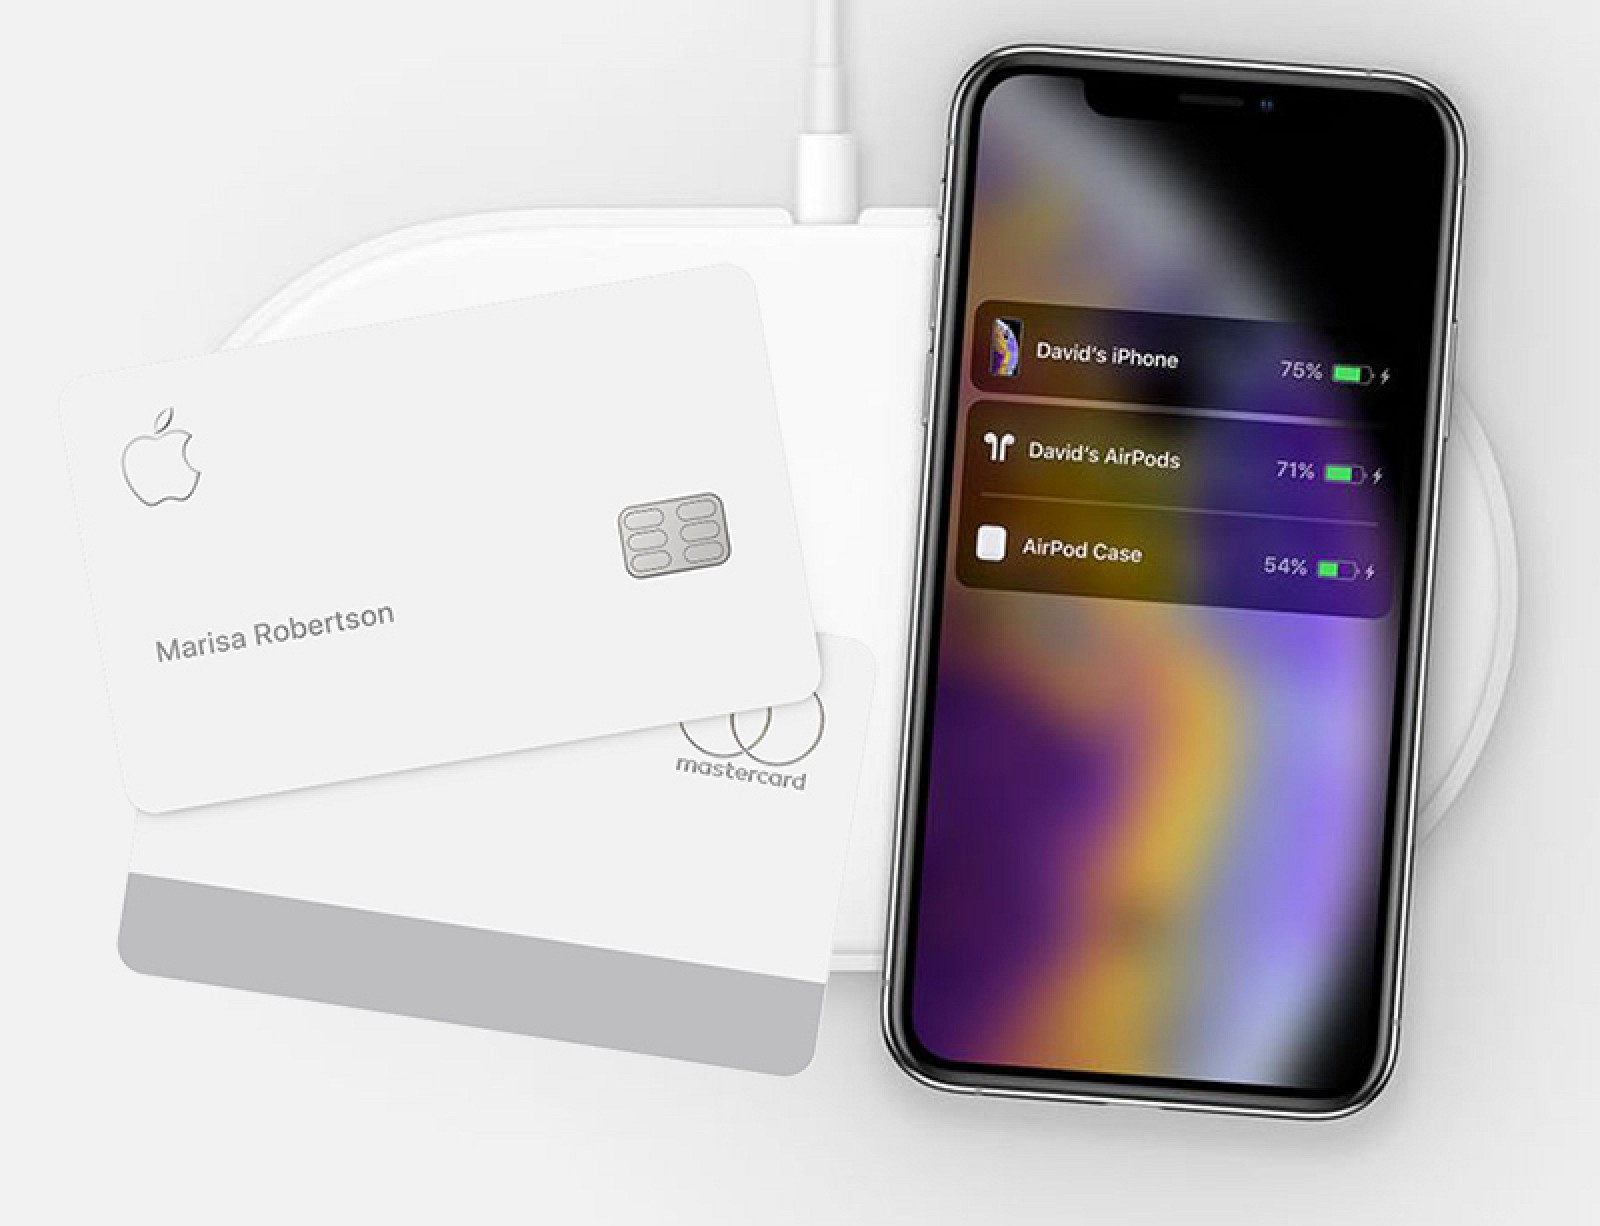 Top 10 Most Discussed MacRumors Stories of 2019: AirPower Canceled, Apple Card Launches, and More - MacRumors